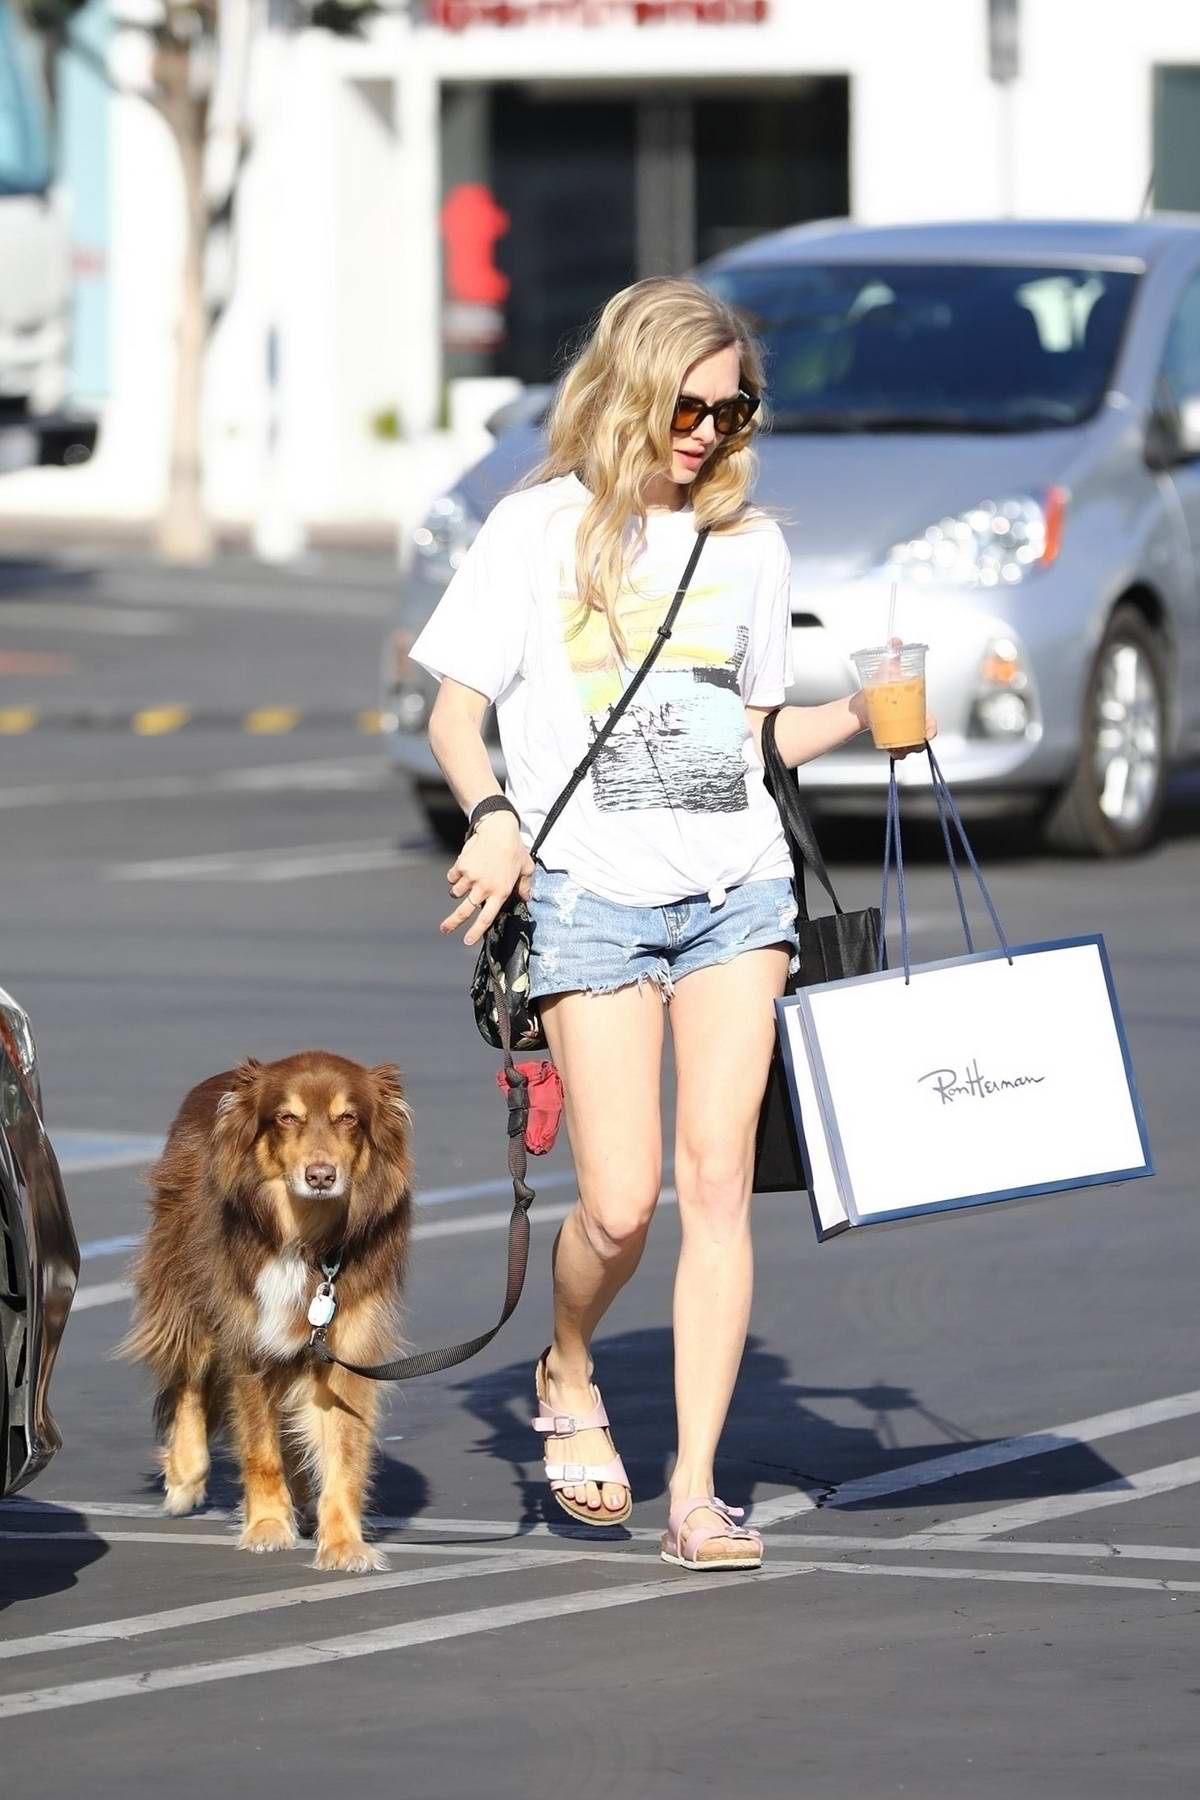 Amanda Seyfried spotted in denim short and white top as she leaves Fred Segal with her dog in Los Angeles